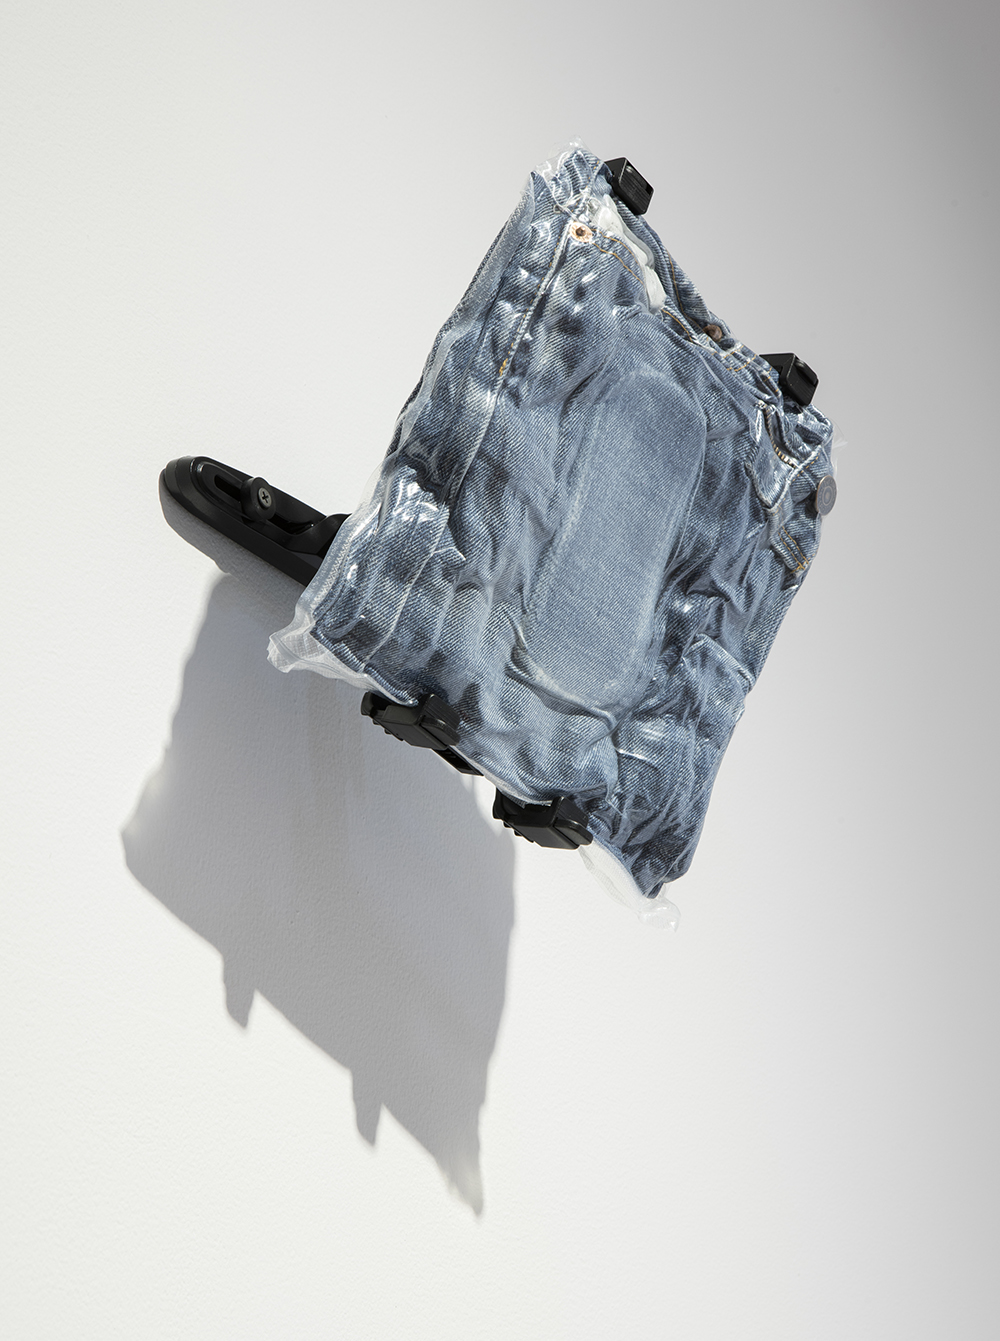 <em>Denim #5</em>, 2017. Vacuum packed jeans, tablet wall mount, 9 1/2 x 10 x 5 inches